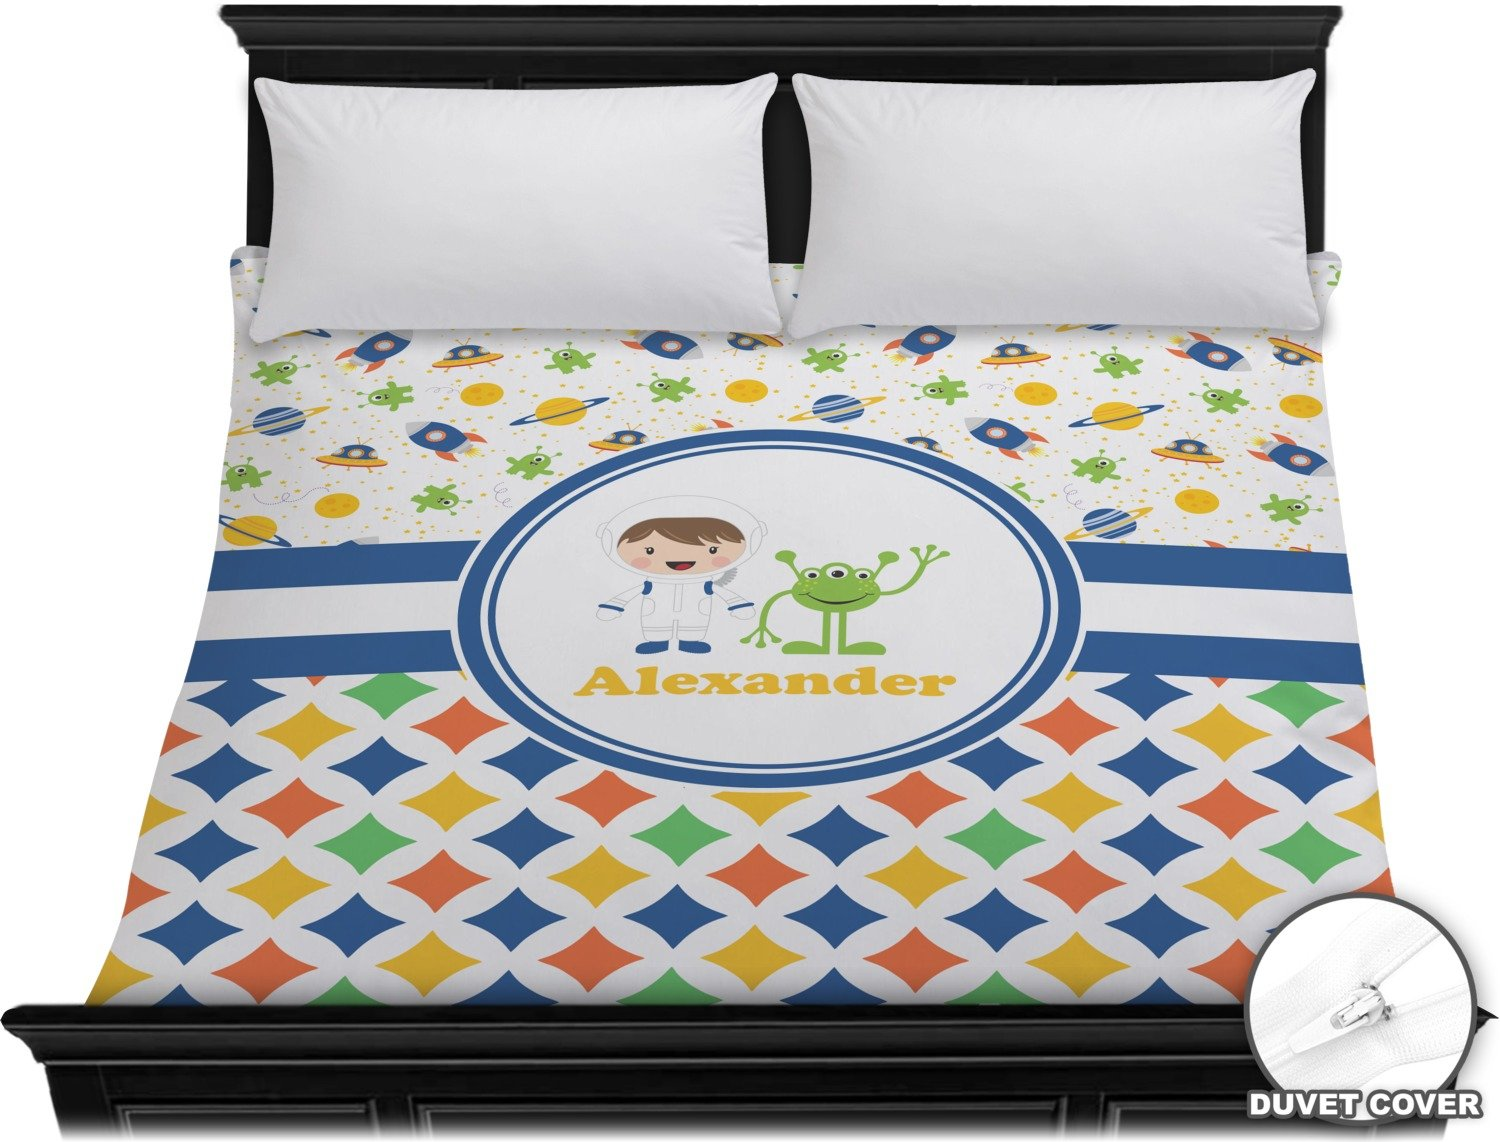 Boy's Space & Geometric Print Duvet Cover (Personalized) - King